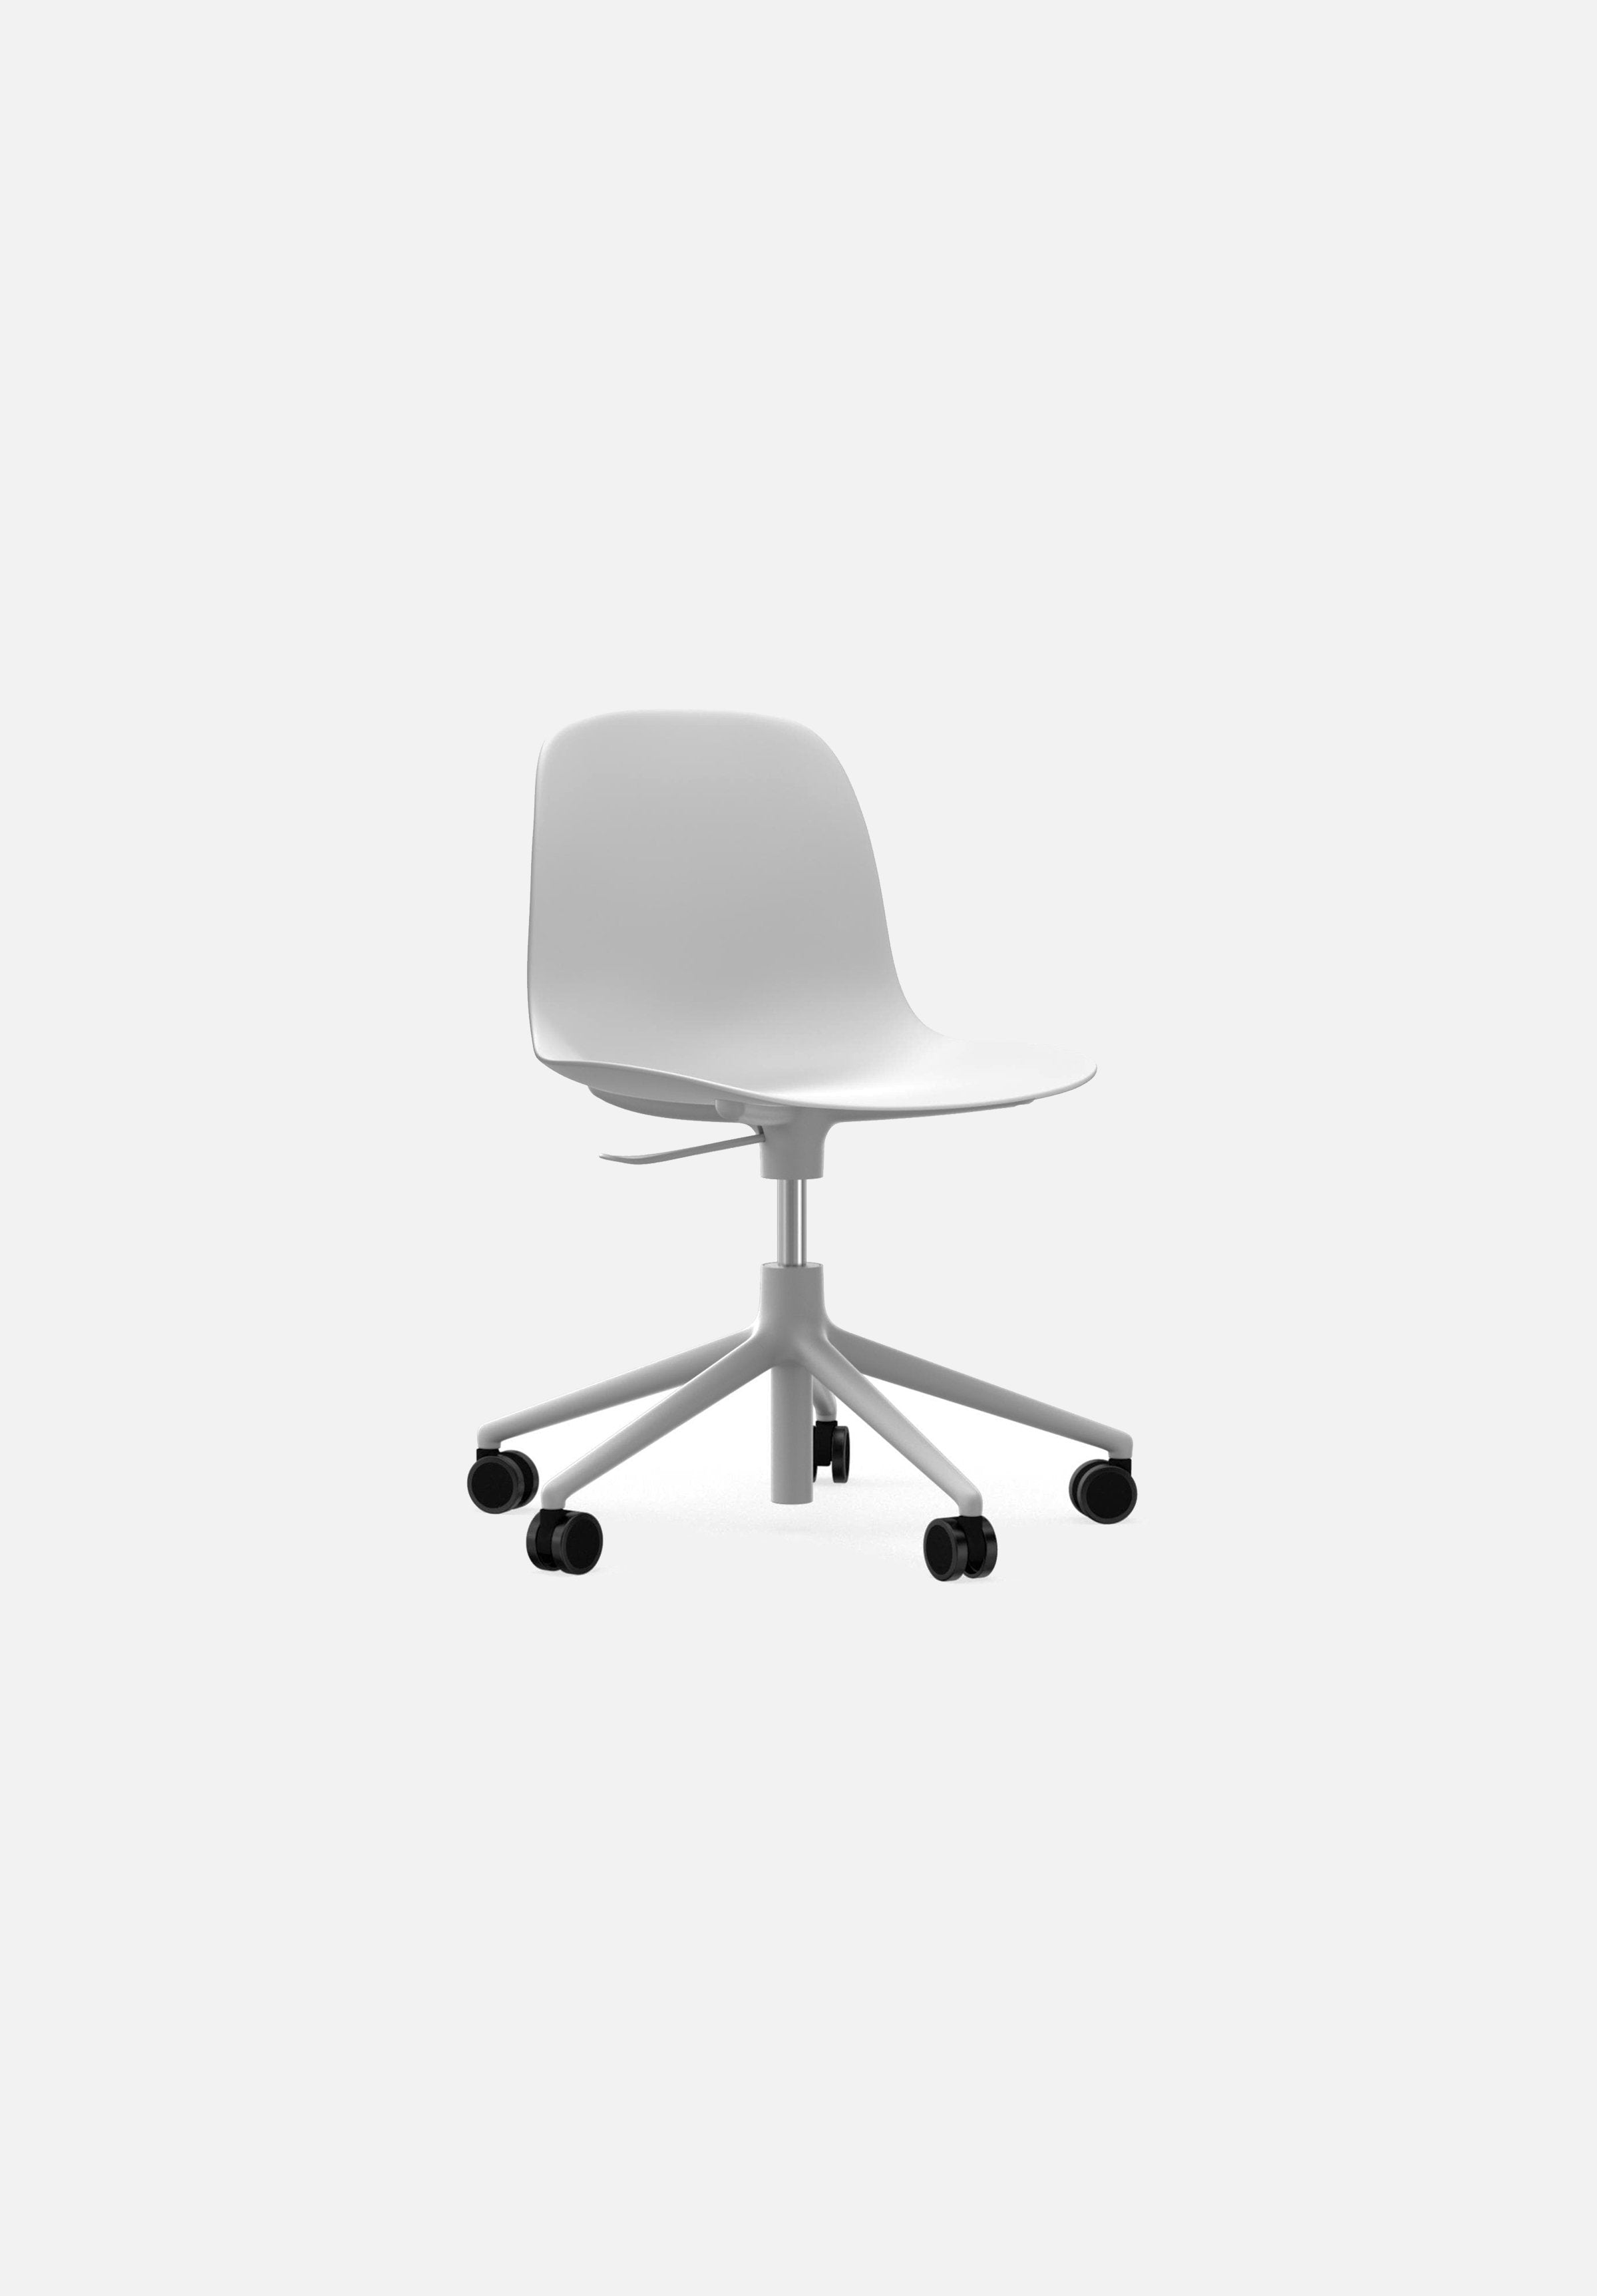 Form Chair — Swivel Gaslift-Simon Legald-Normann Copenhagen-White-White Aluminum-Average